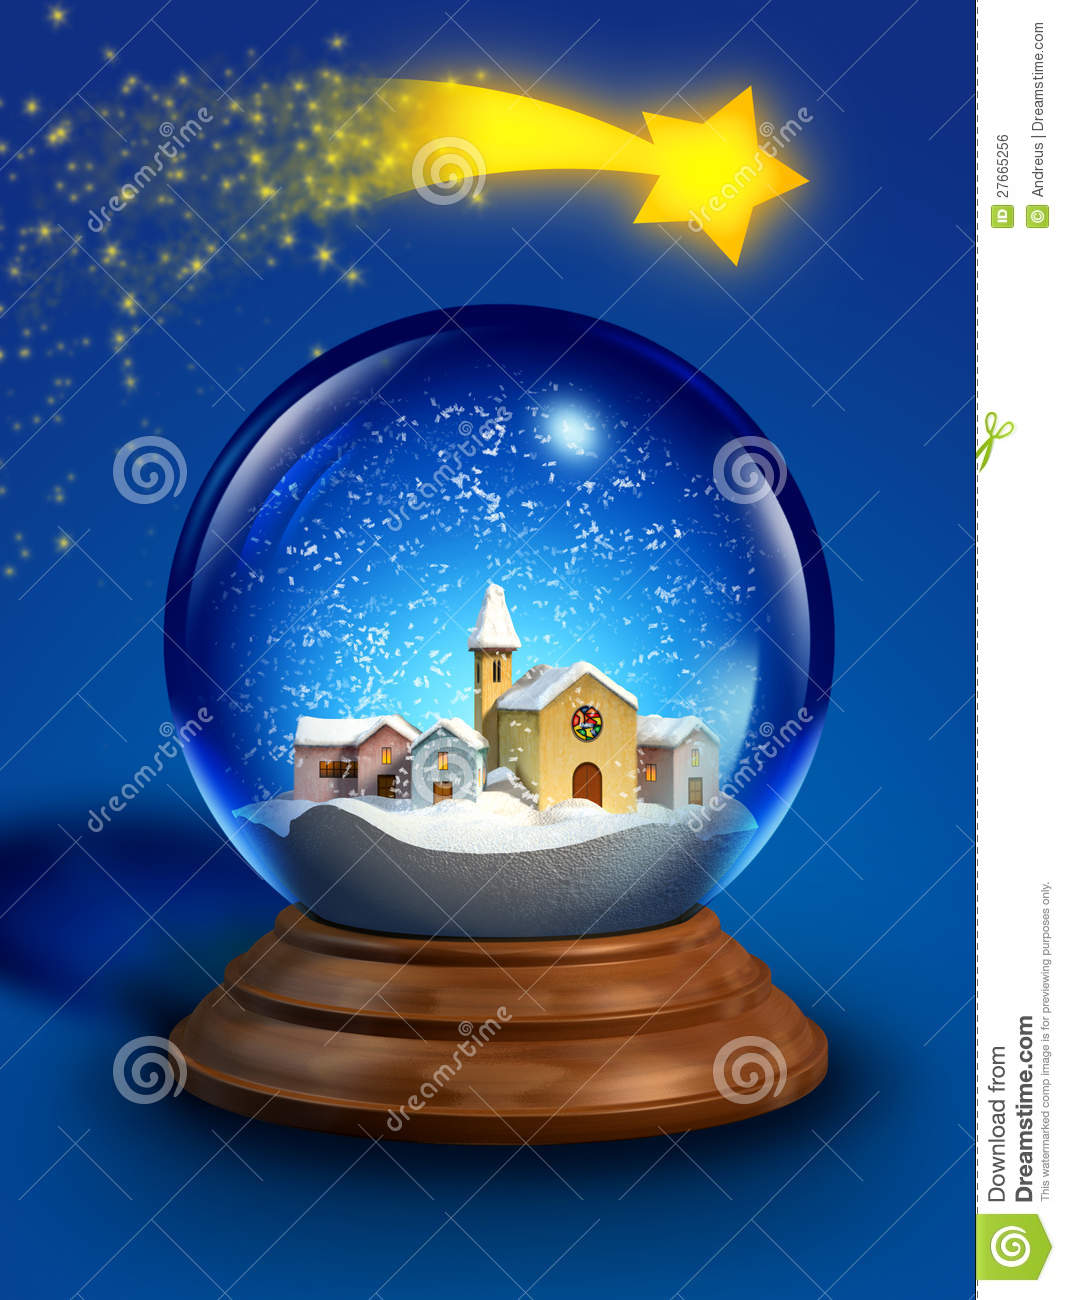 Glass snow ball stock illustration image of design